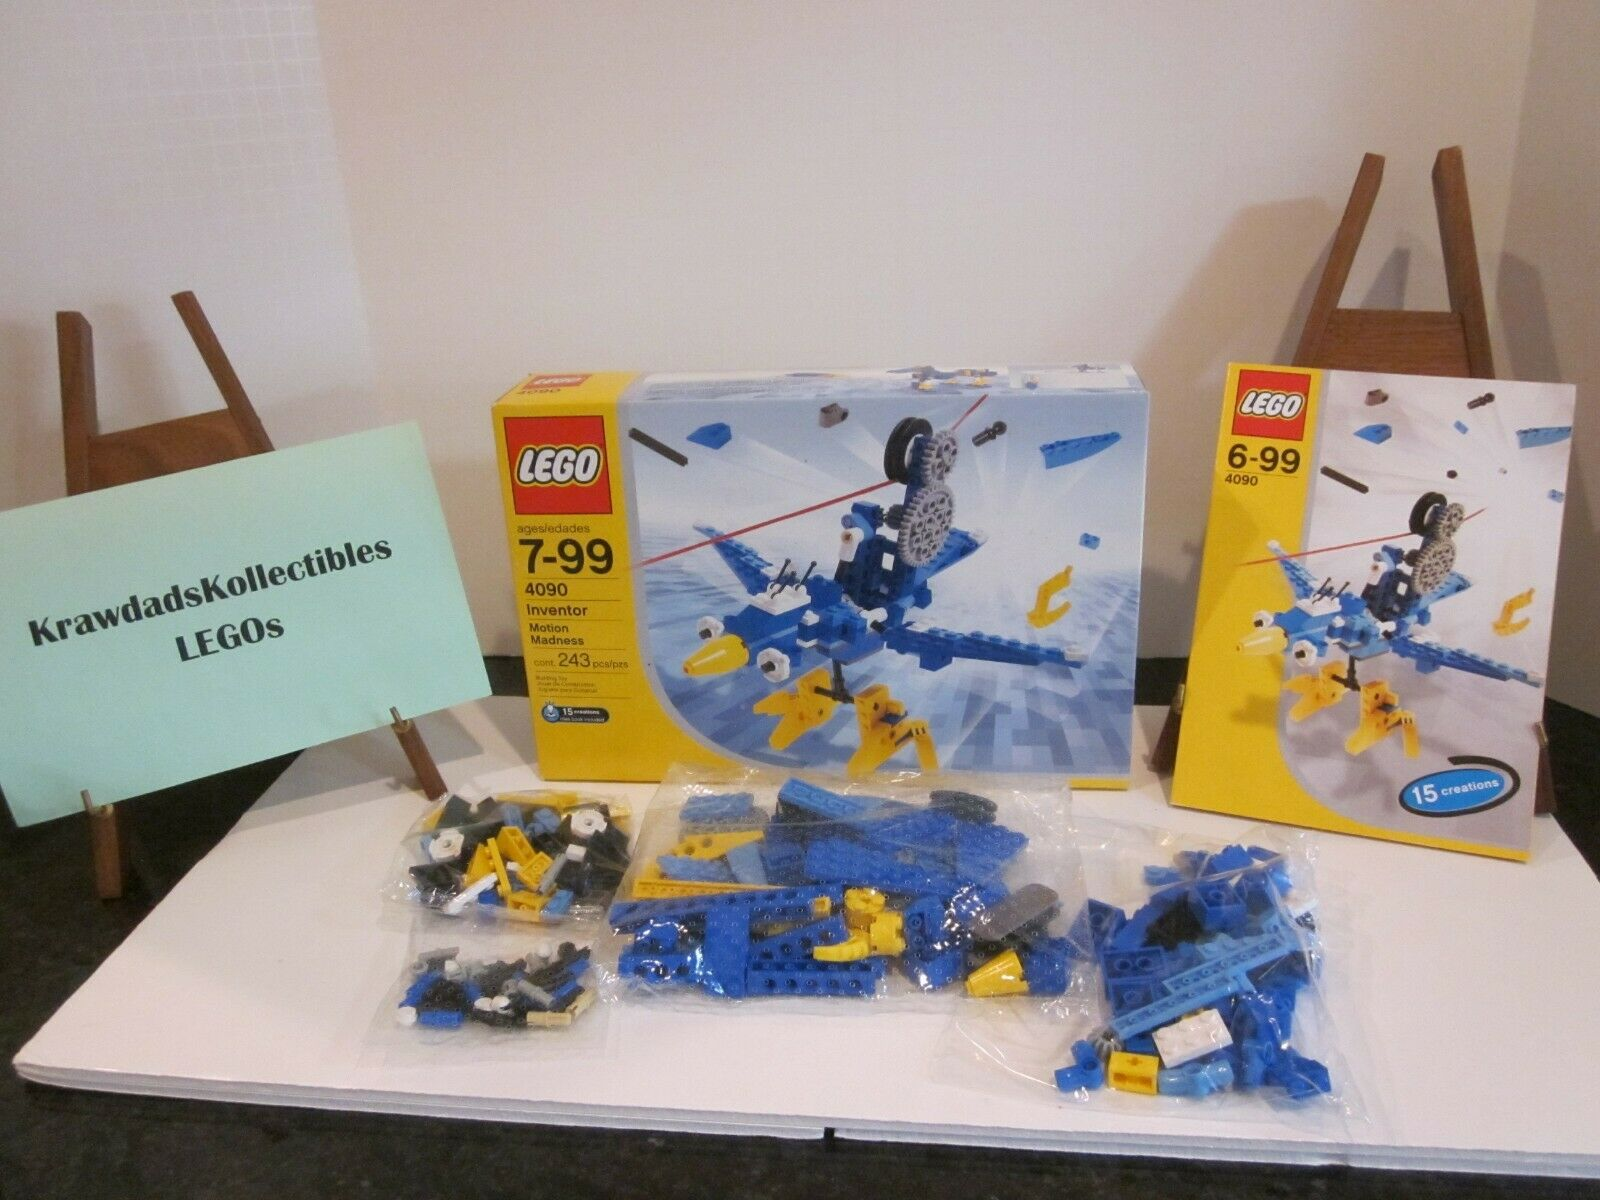 LEGO SET 4090 INVENTOR, MOTION MADNESS, UNUSED, SEALED IN OPENED BOX WITH MANUAL